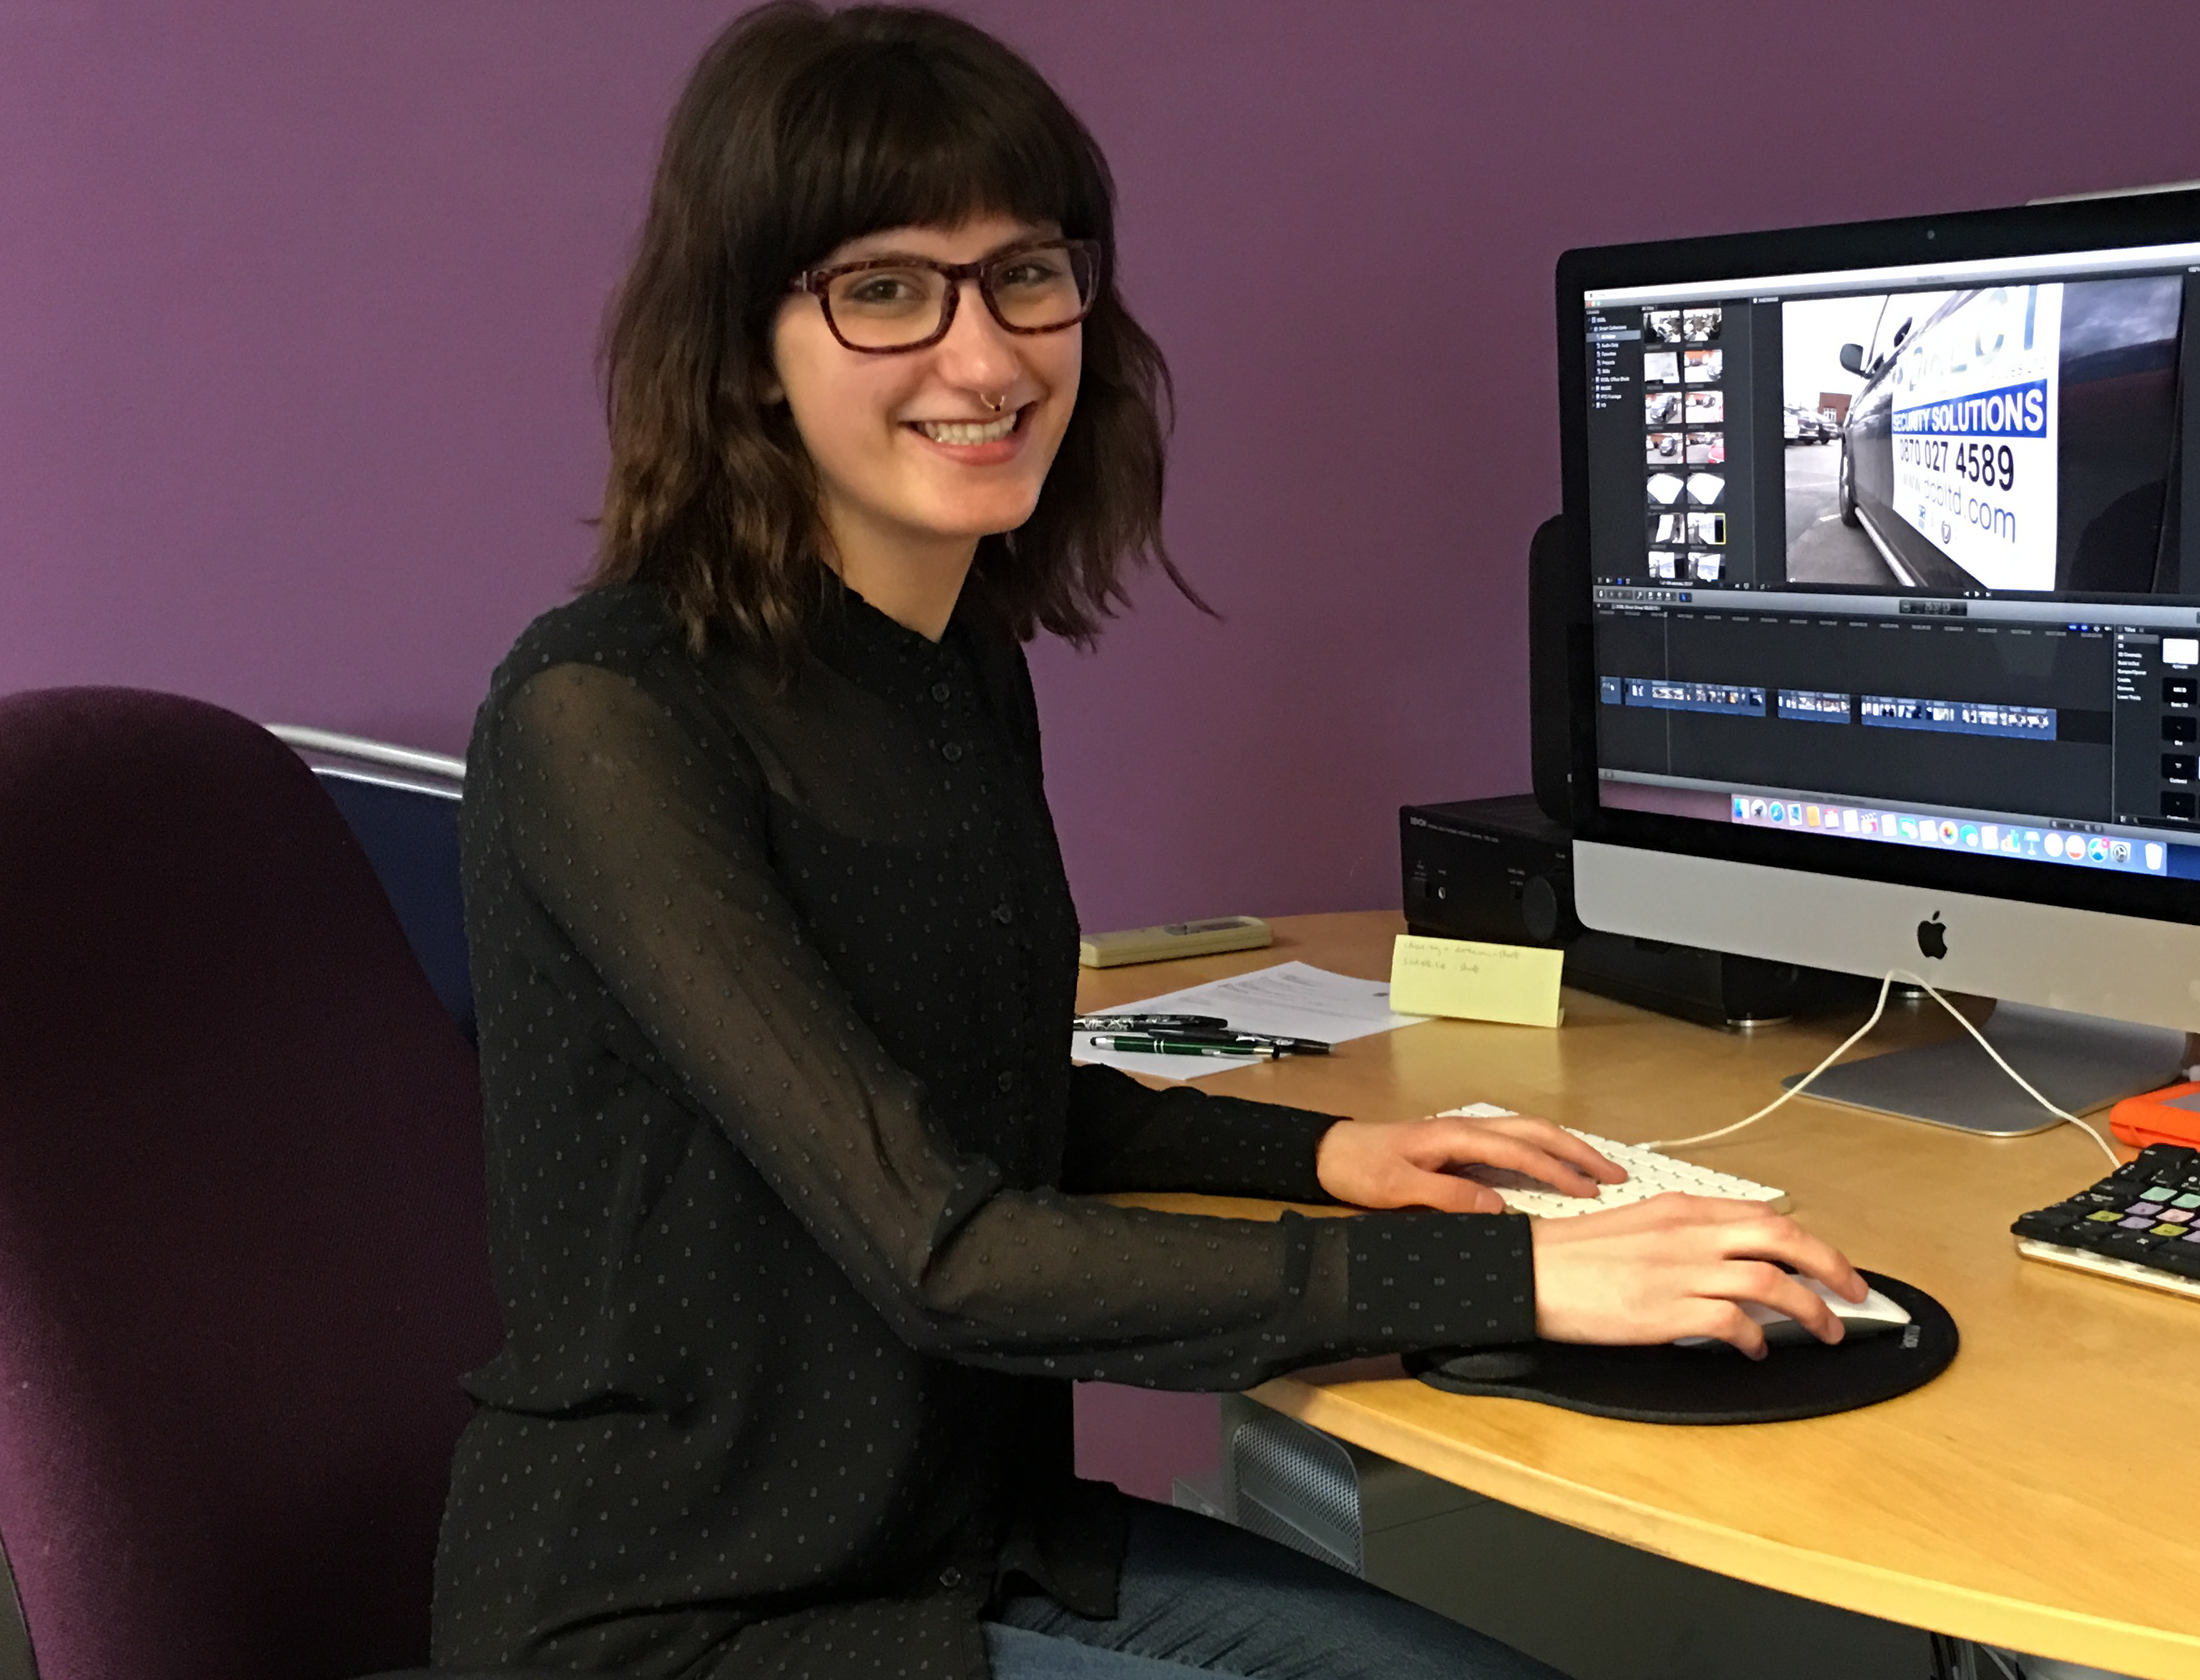 Meet Bianca - our new editor!